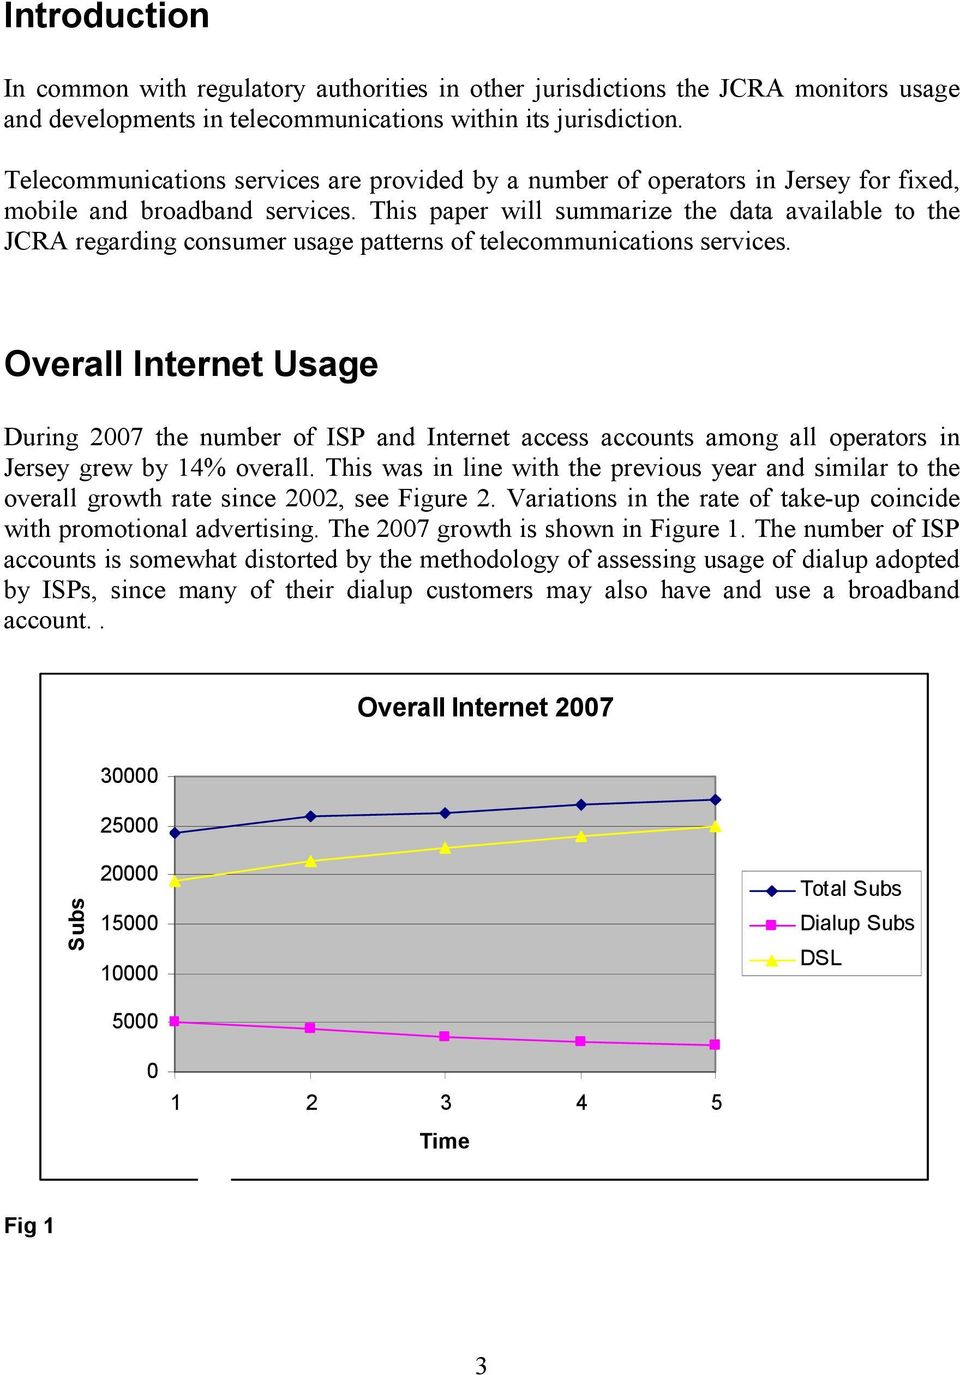 This paper will summarize the data available to the JCRA regarding consumer usage patterns of telecommunications services.